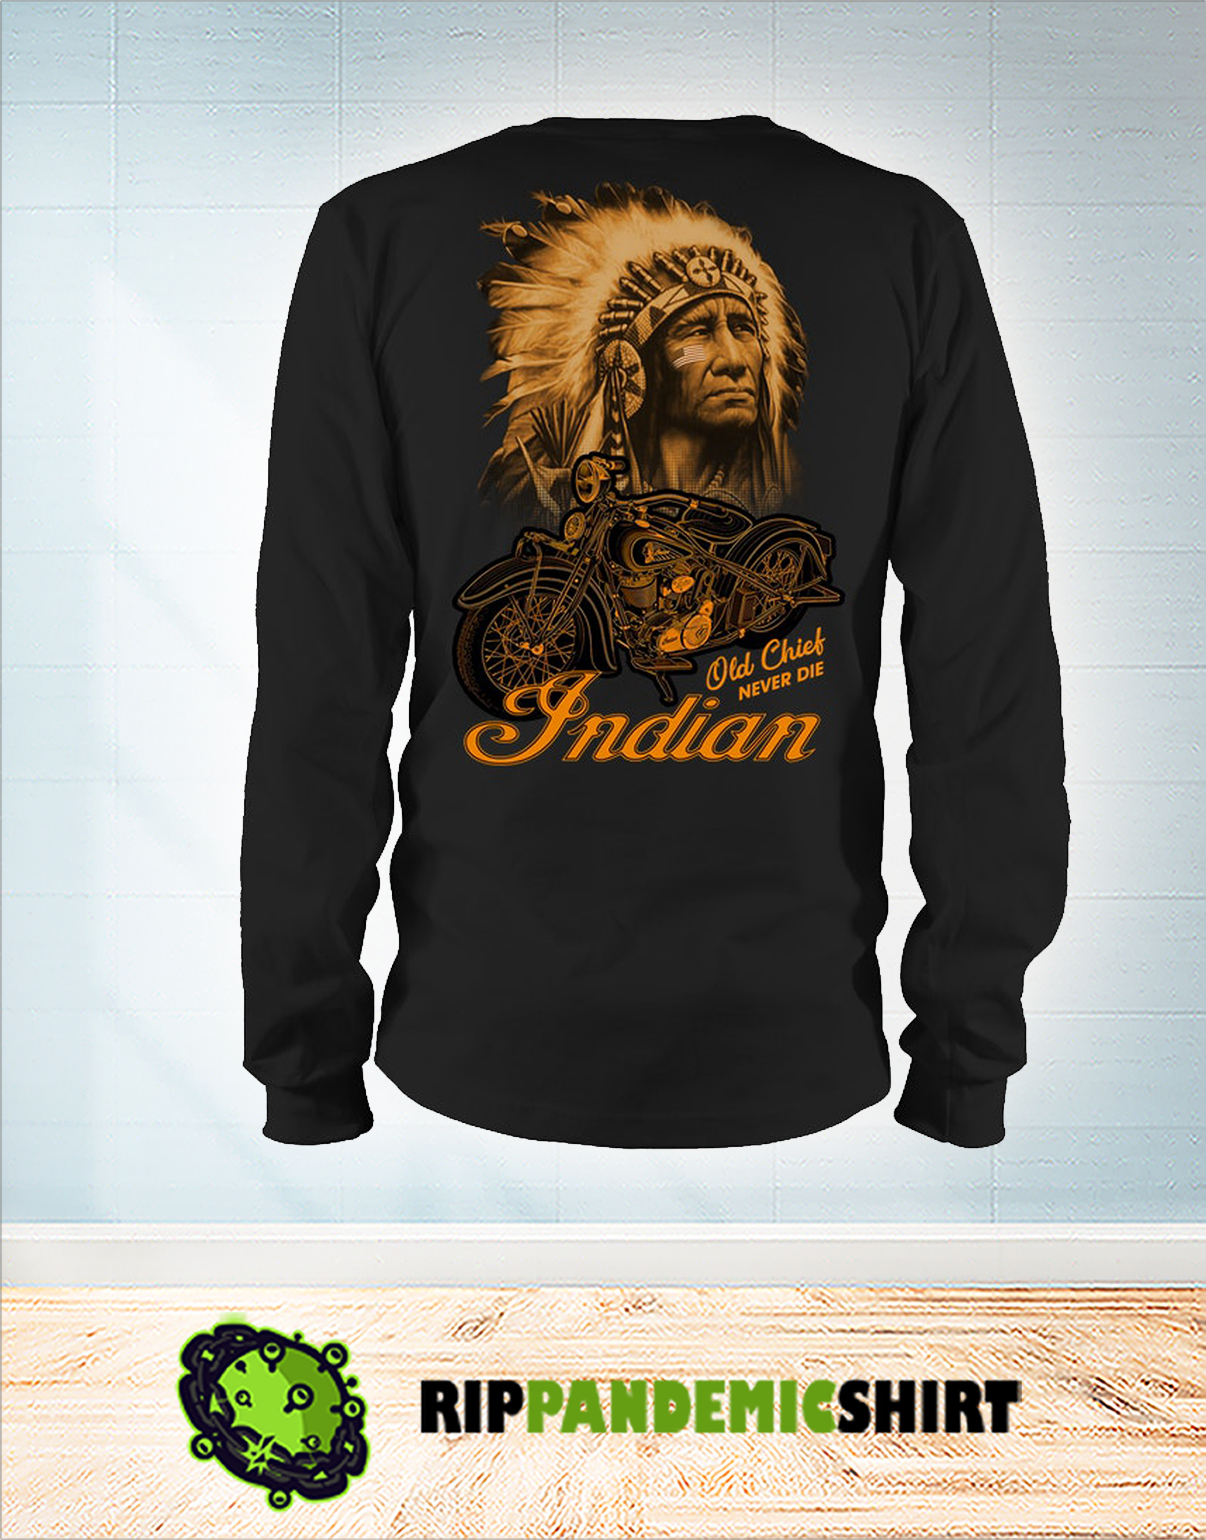 Indian old chick never die long sleeve